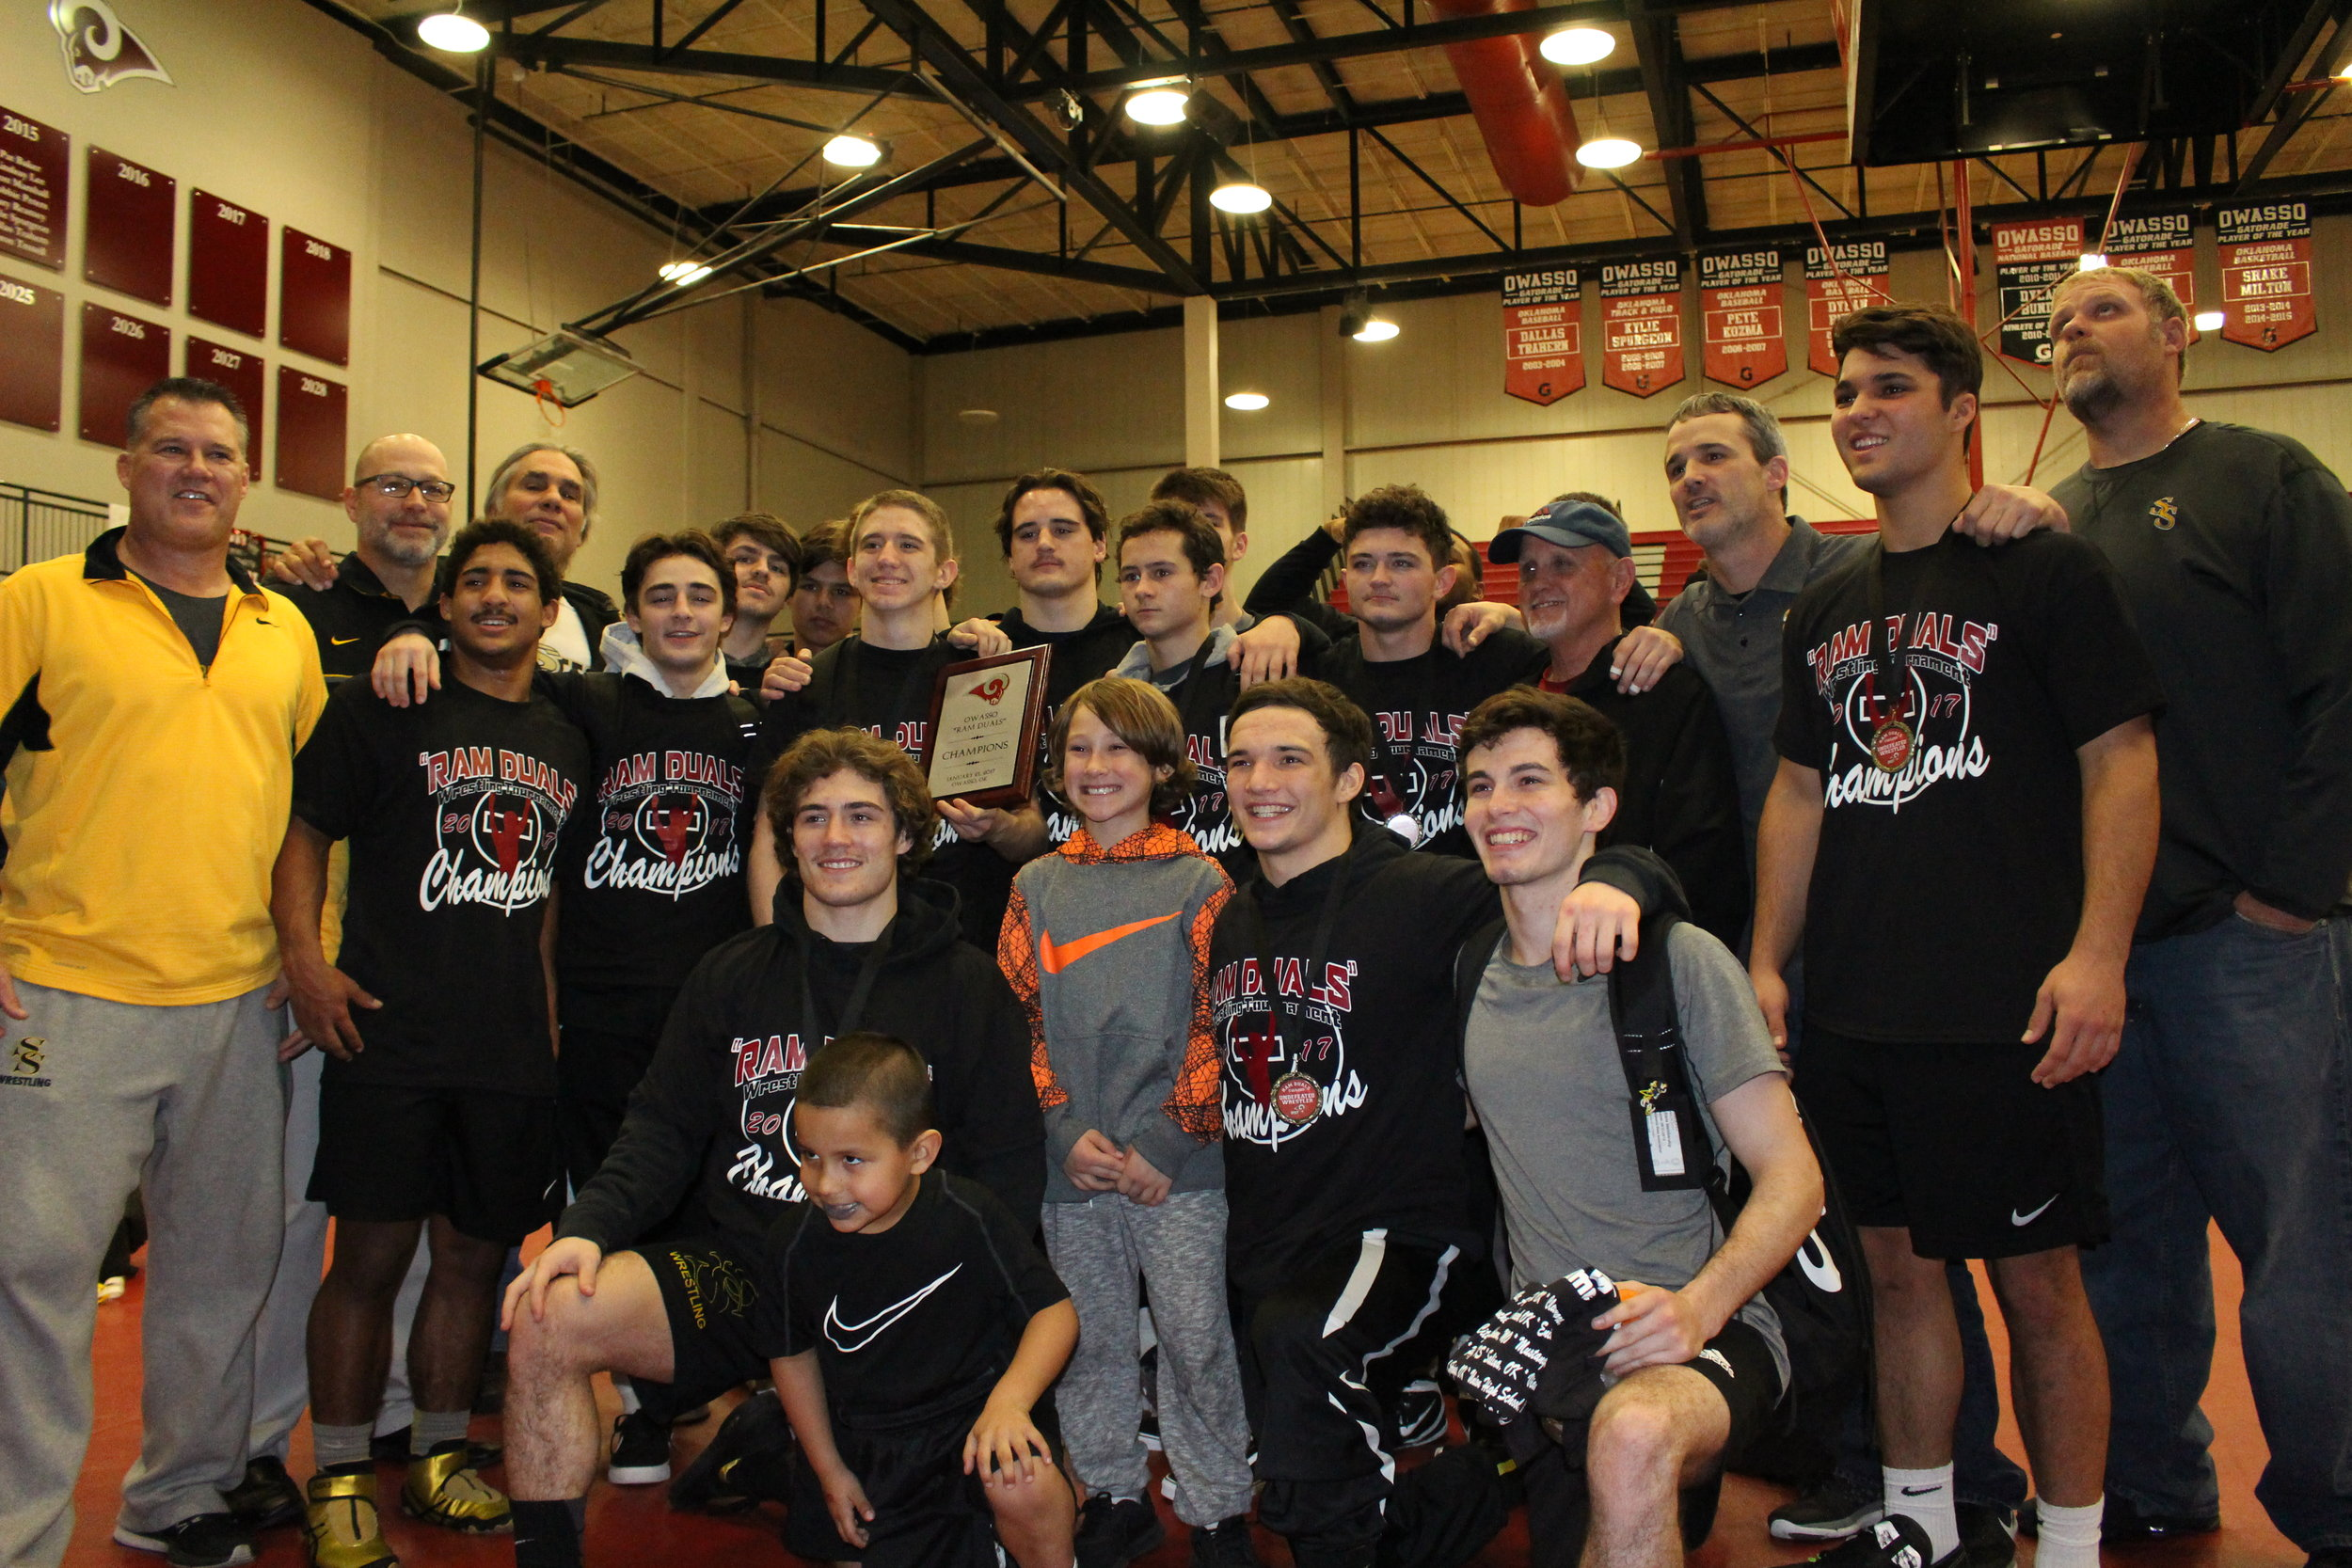 The Sandites claimed the 2nd Annual Ram Duals Championship with a 48-18 victory over 3A No. 1 Perry.